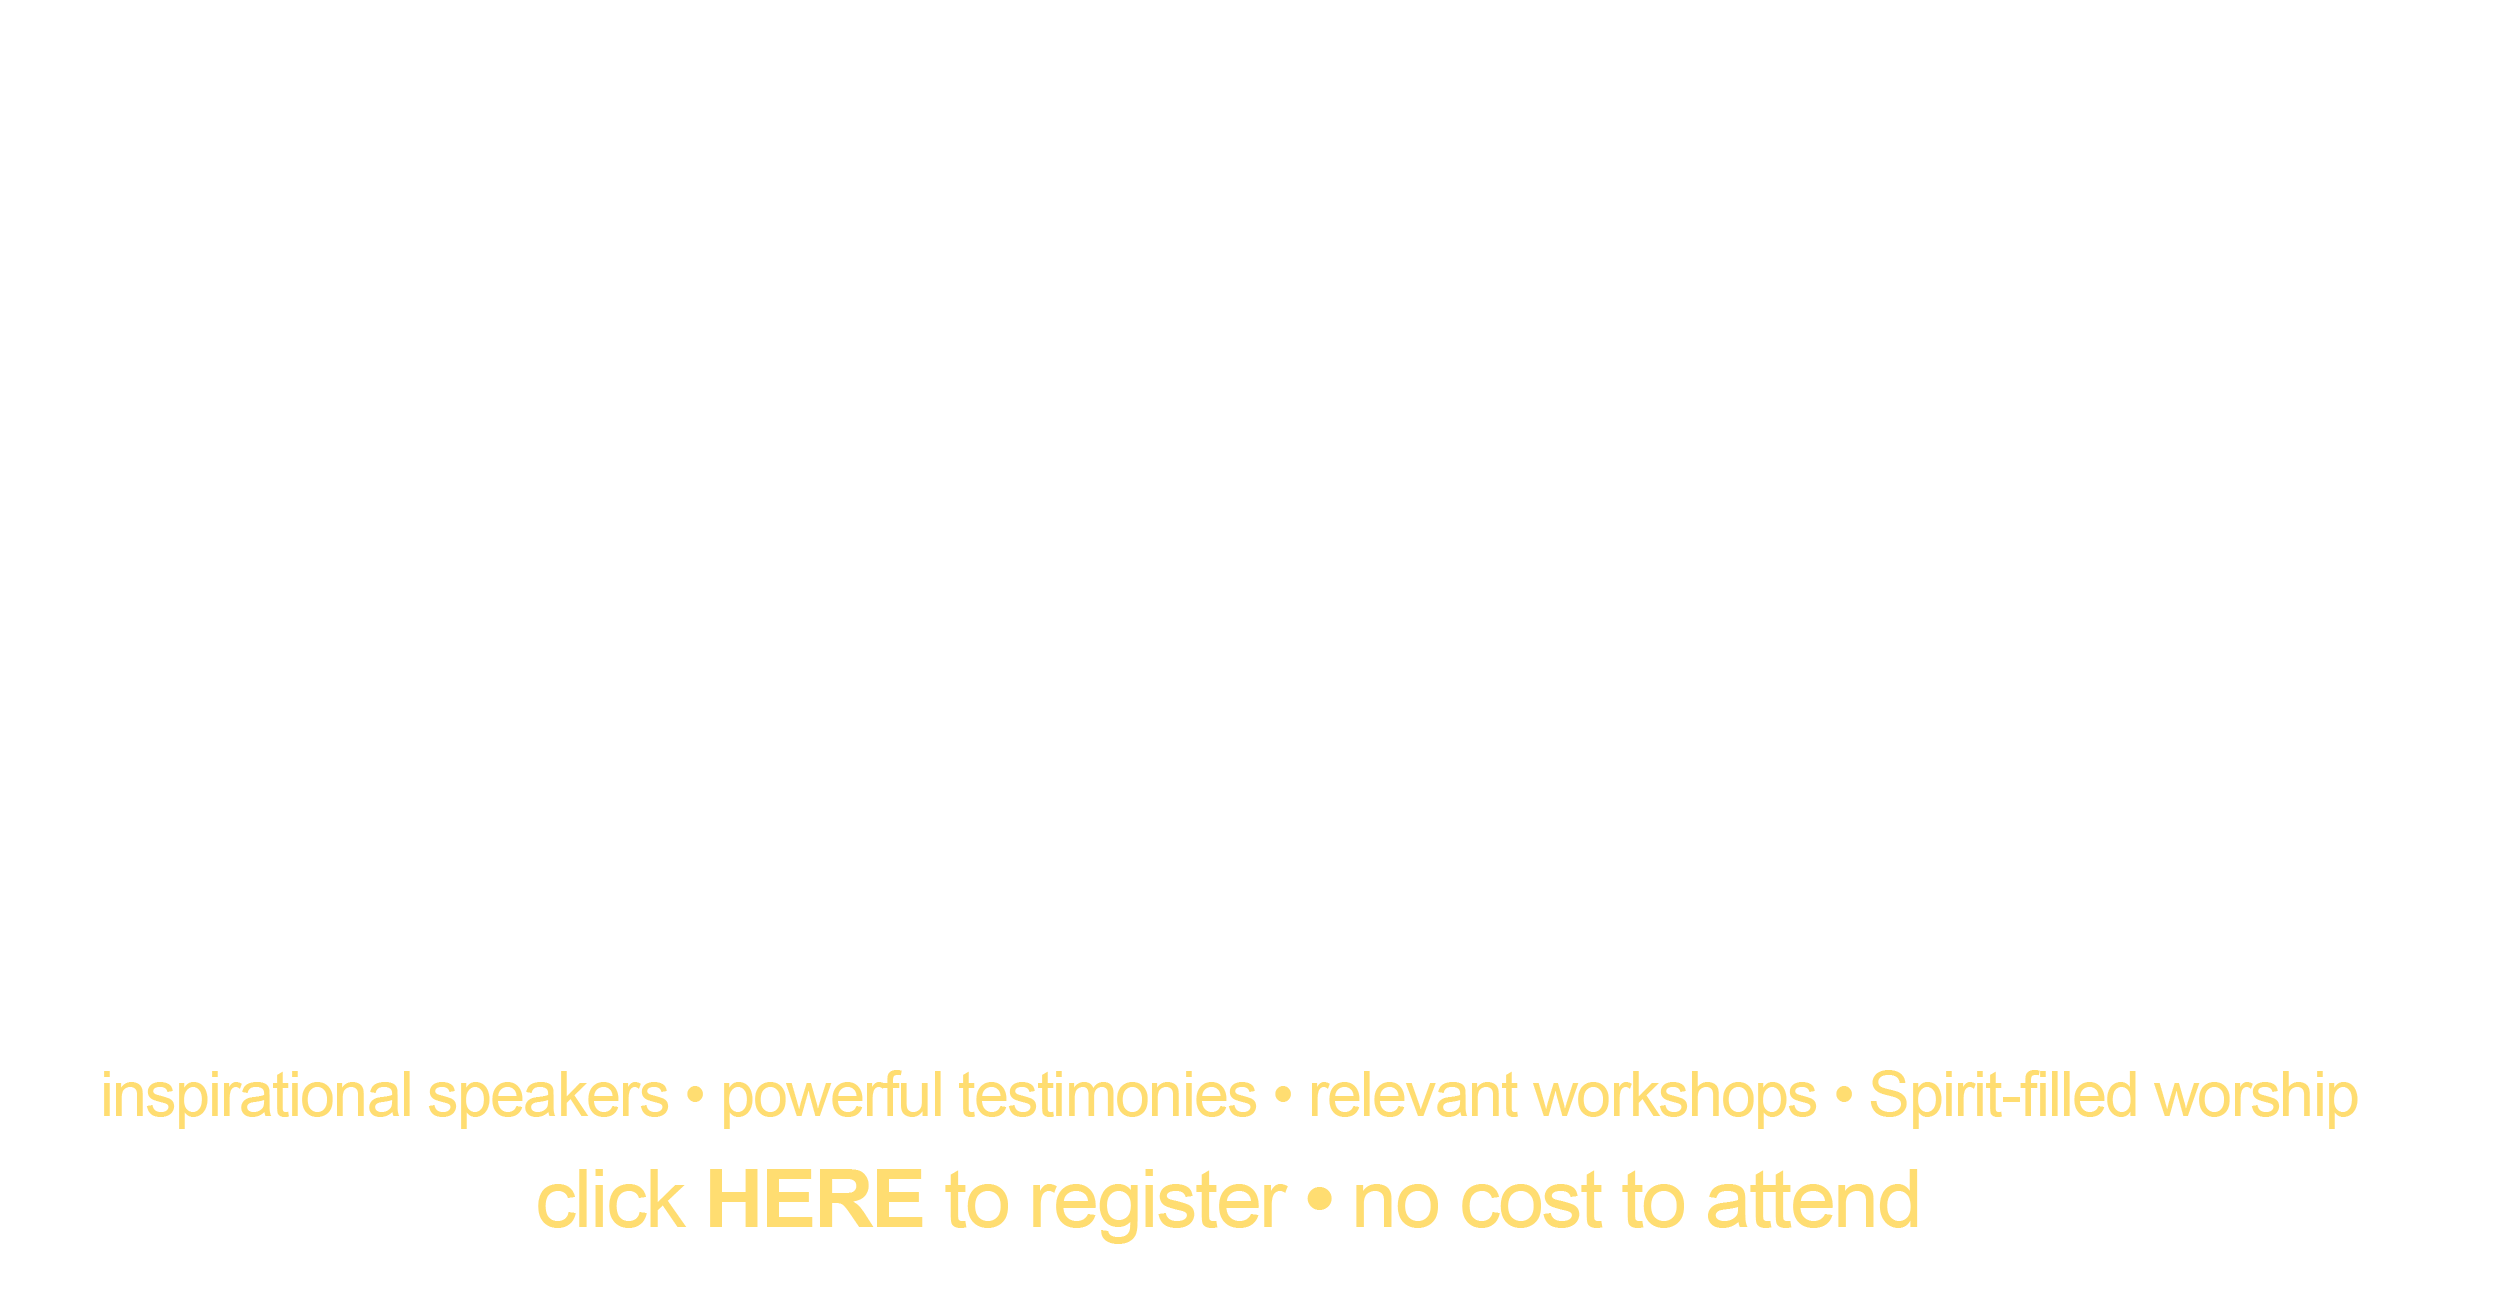 Sexuality-truth-Grace-conf-parallax-text